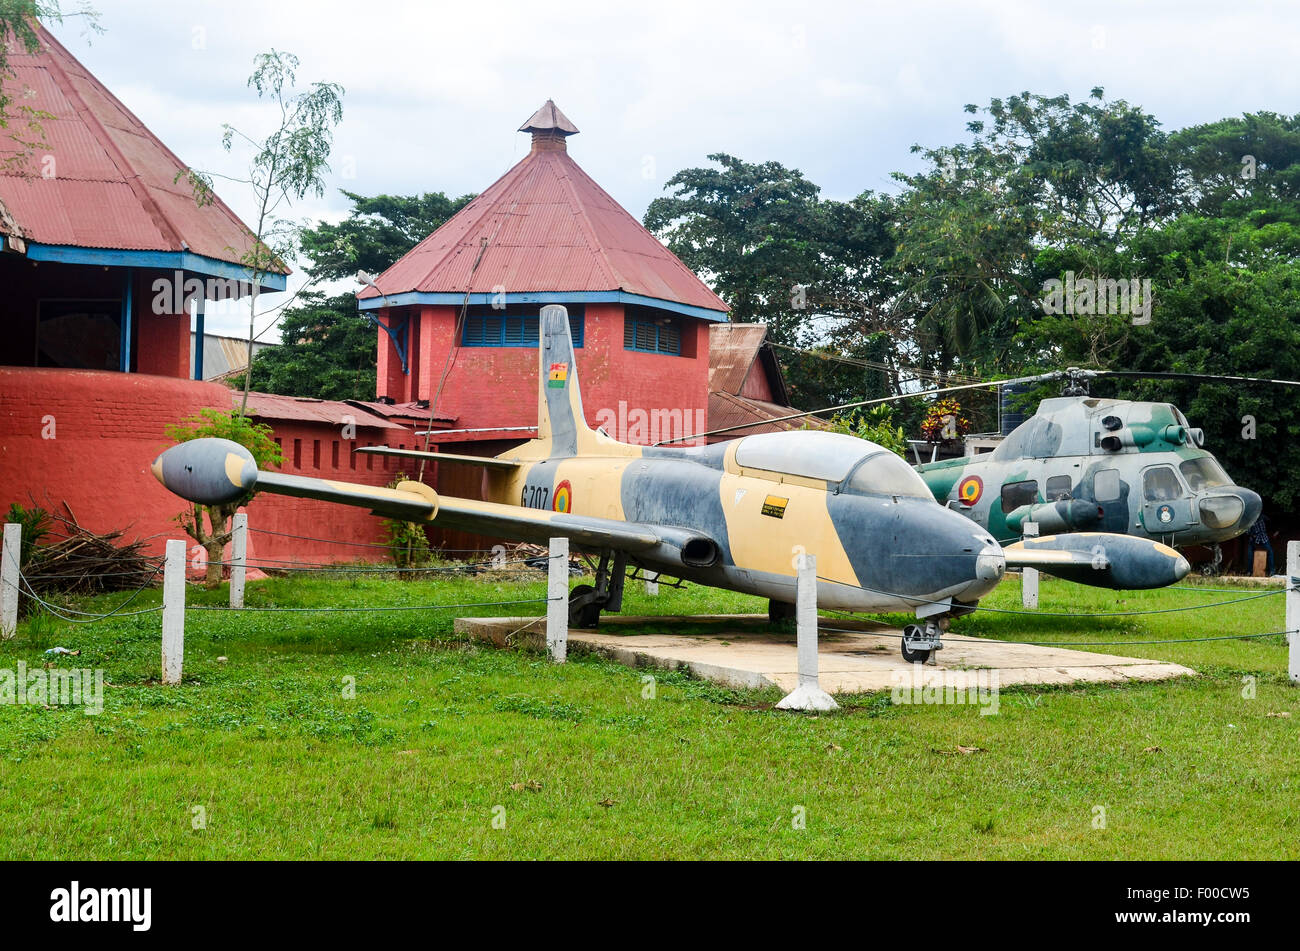 Military equipment (plane and helicopter) at the Kumasi Fort - Ghana Armed Forces Museum, with remains of colonial Stock Photo